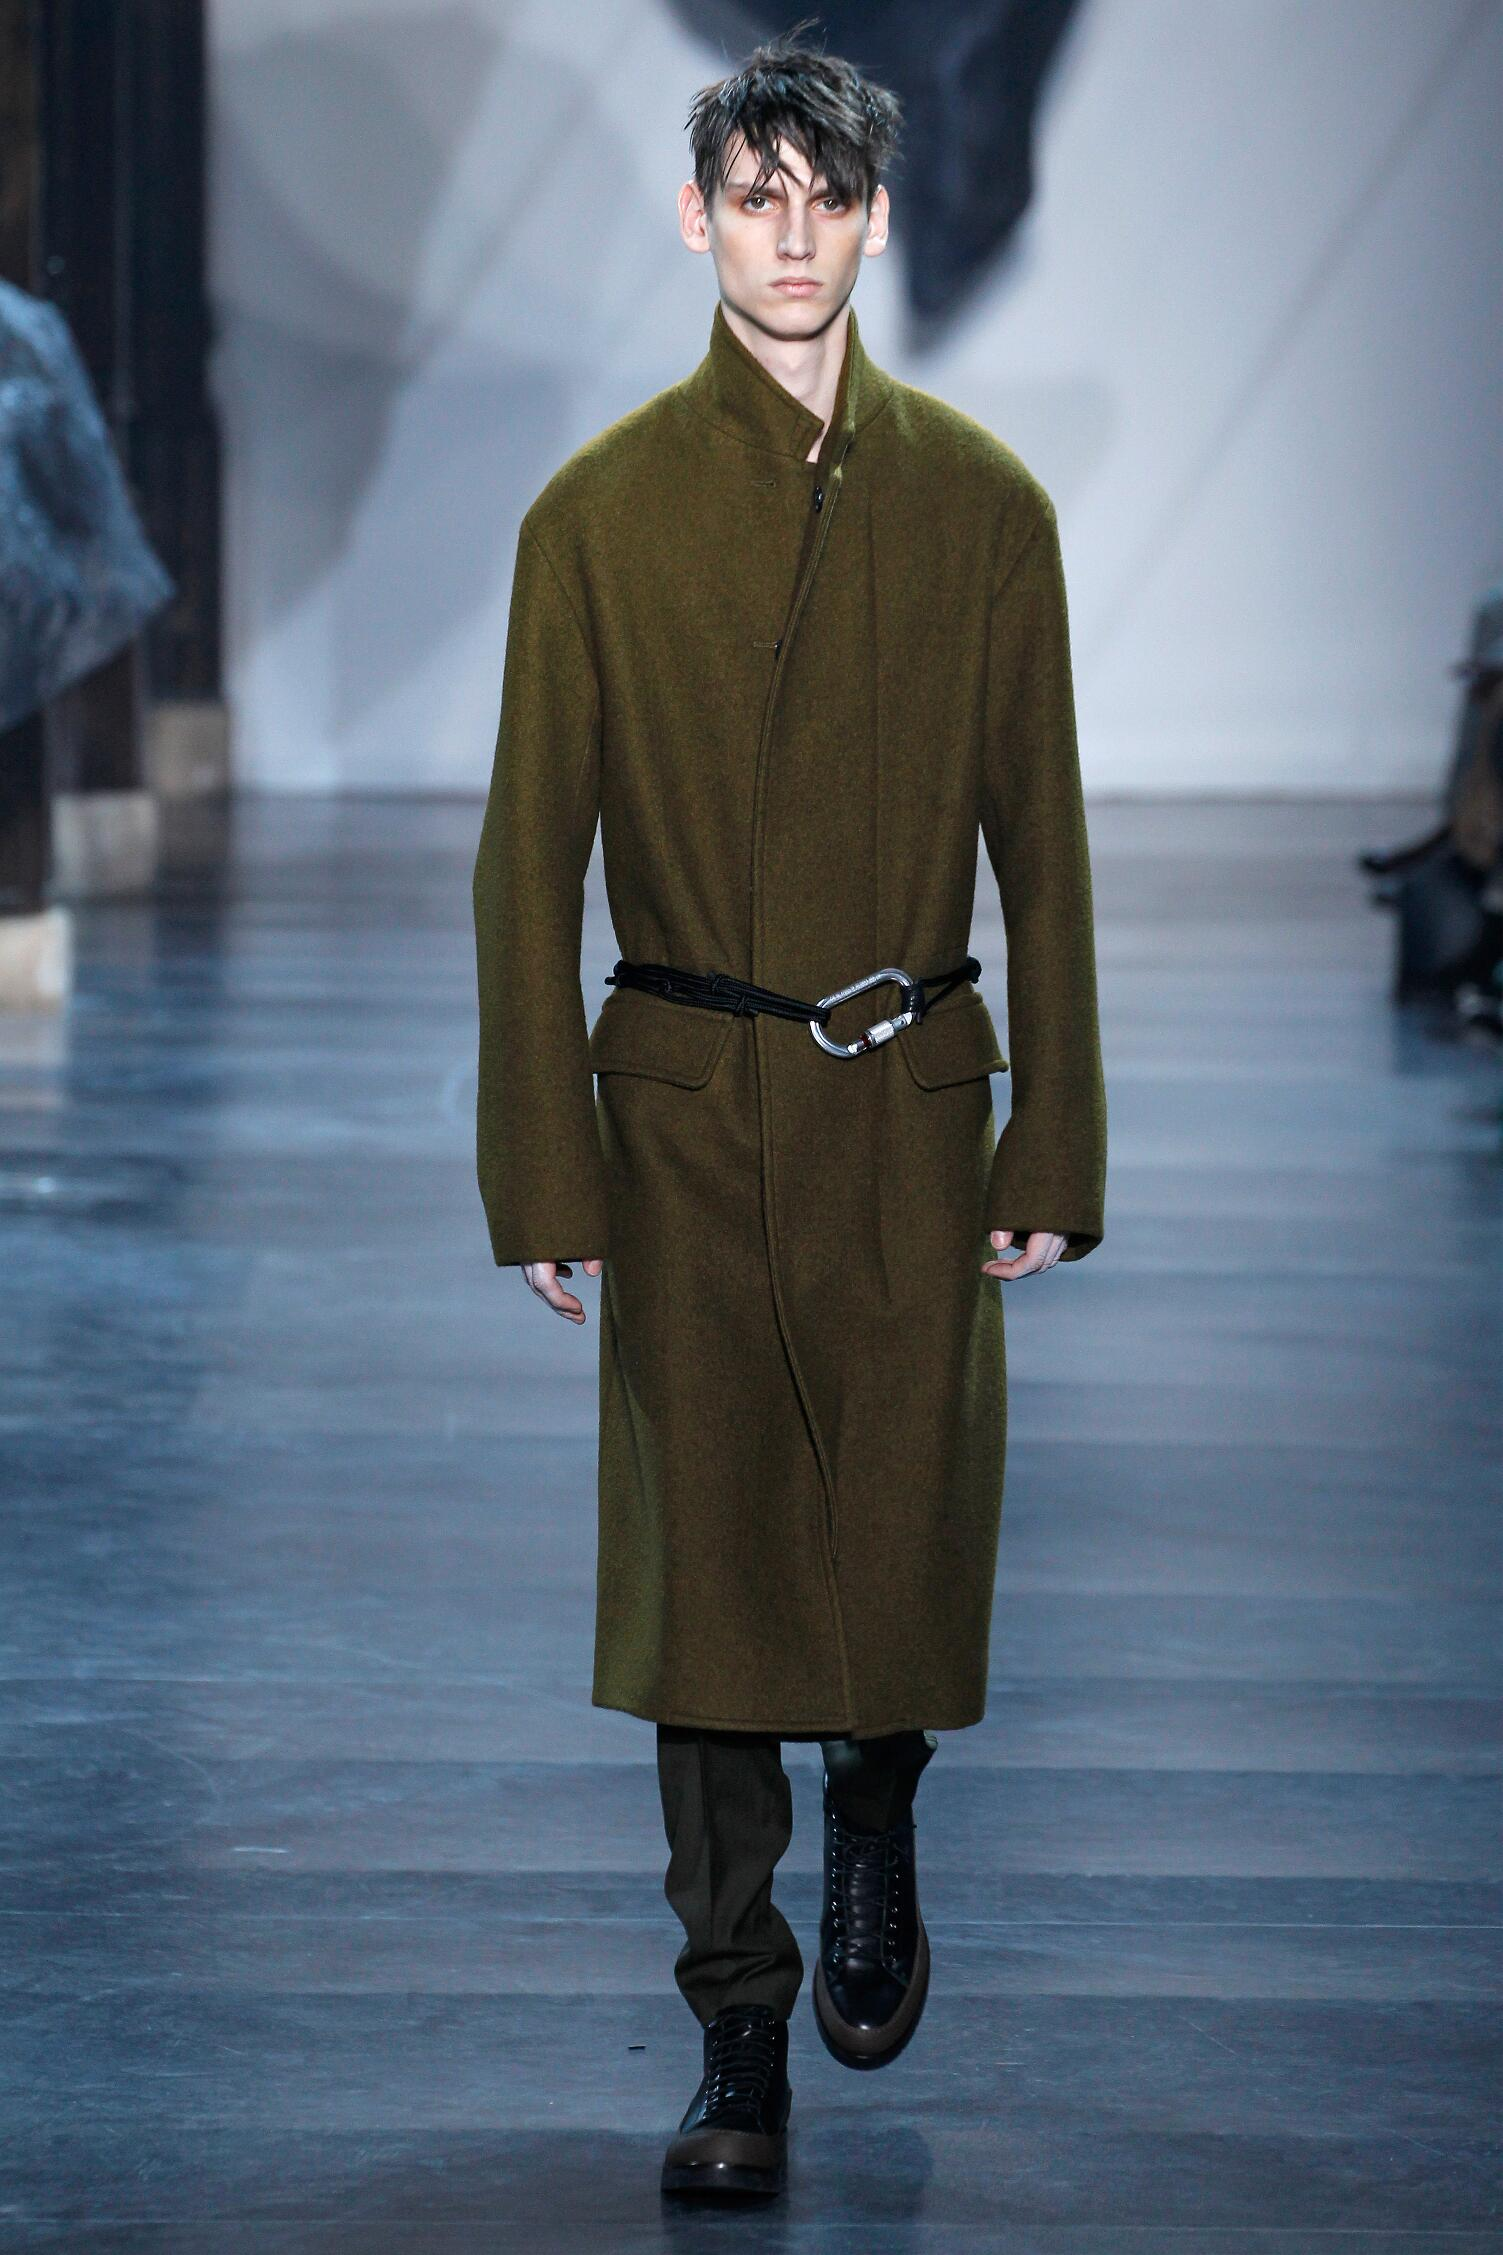 2016 Fall Fashion Man 3.1 Phillip Lim Collection